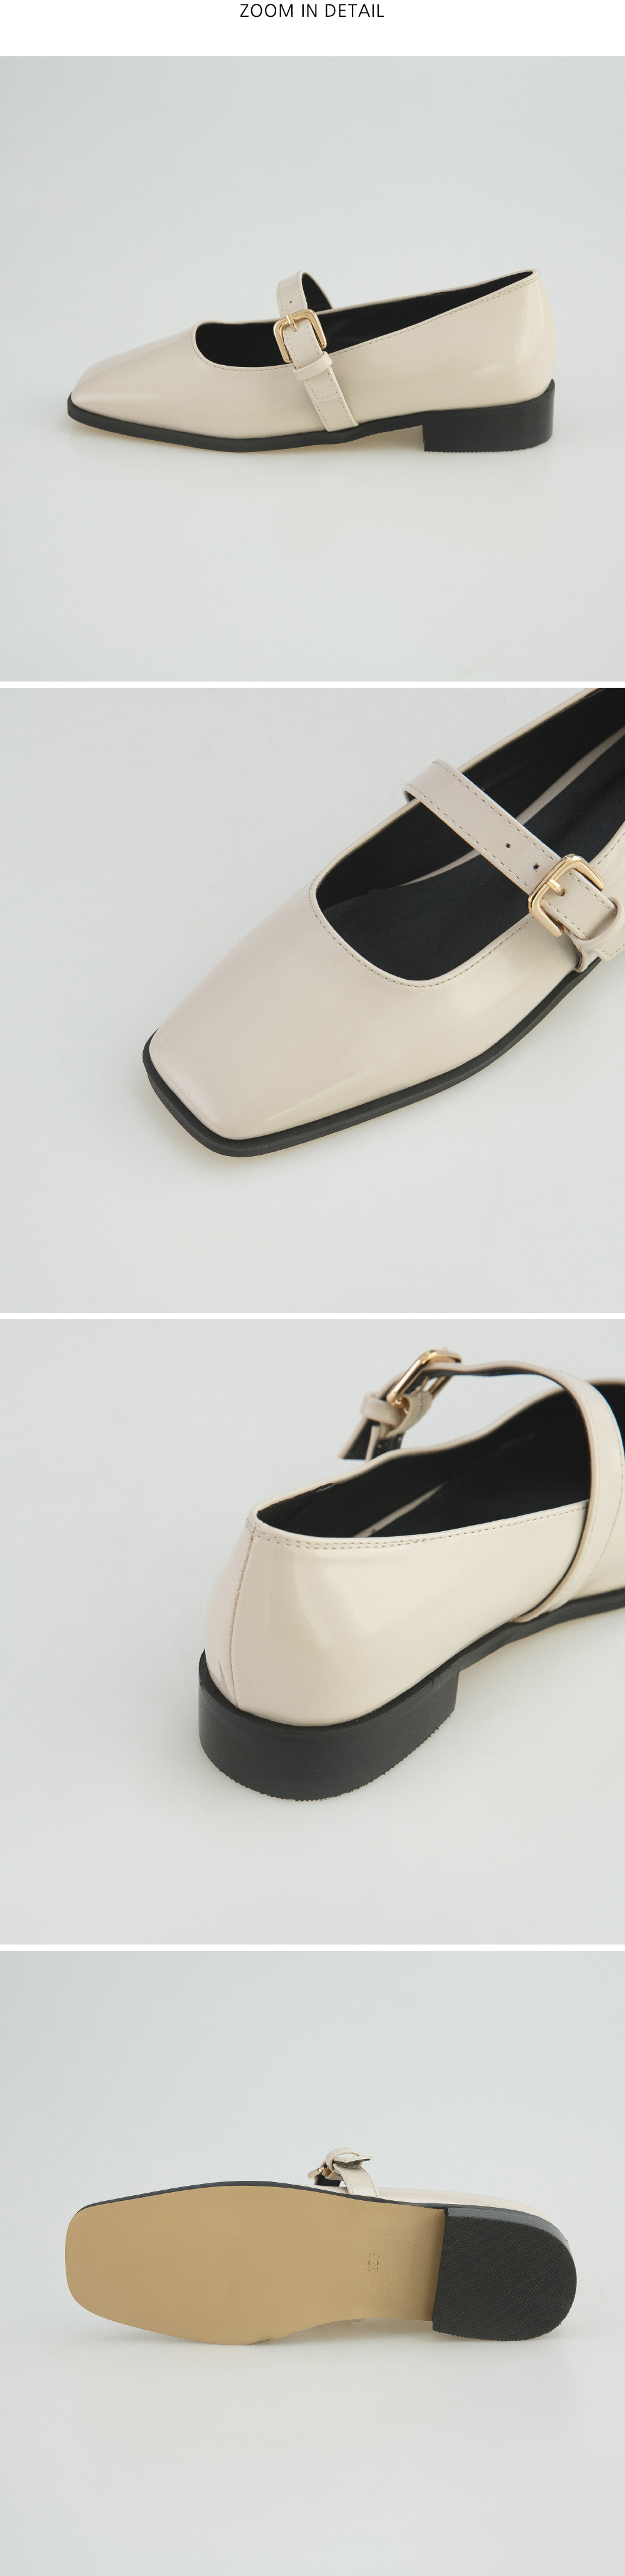 Girly strap Mary Jane shoes